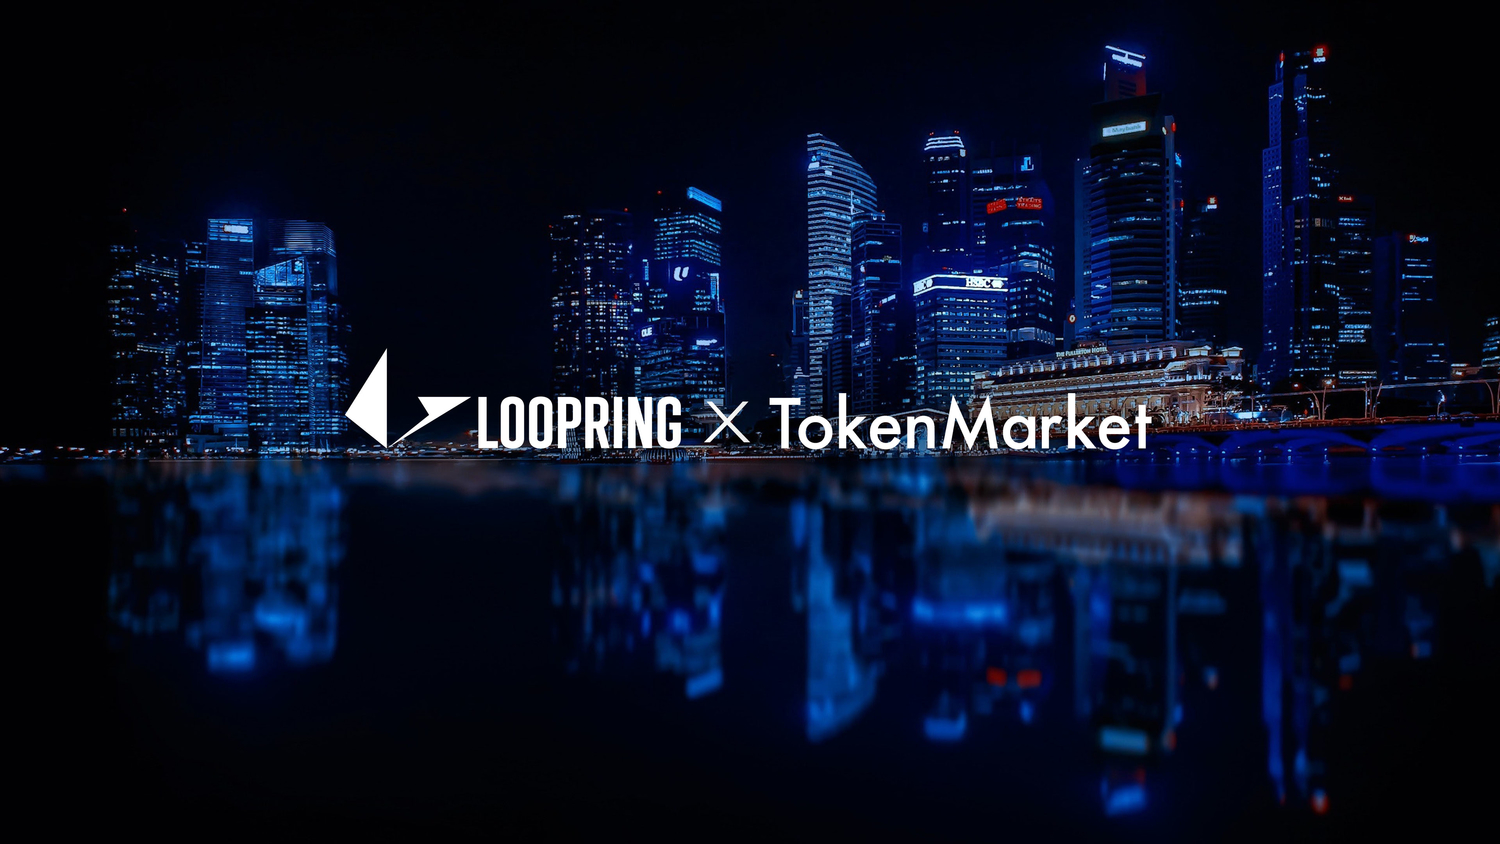 TokenMarket to Advance its Security Exchanges via Loopring Partnership